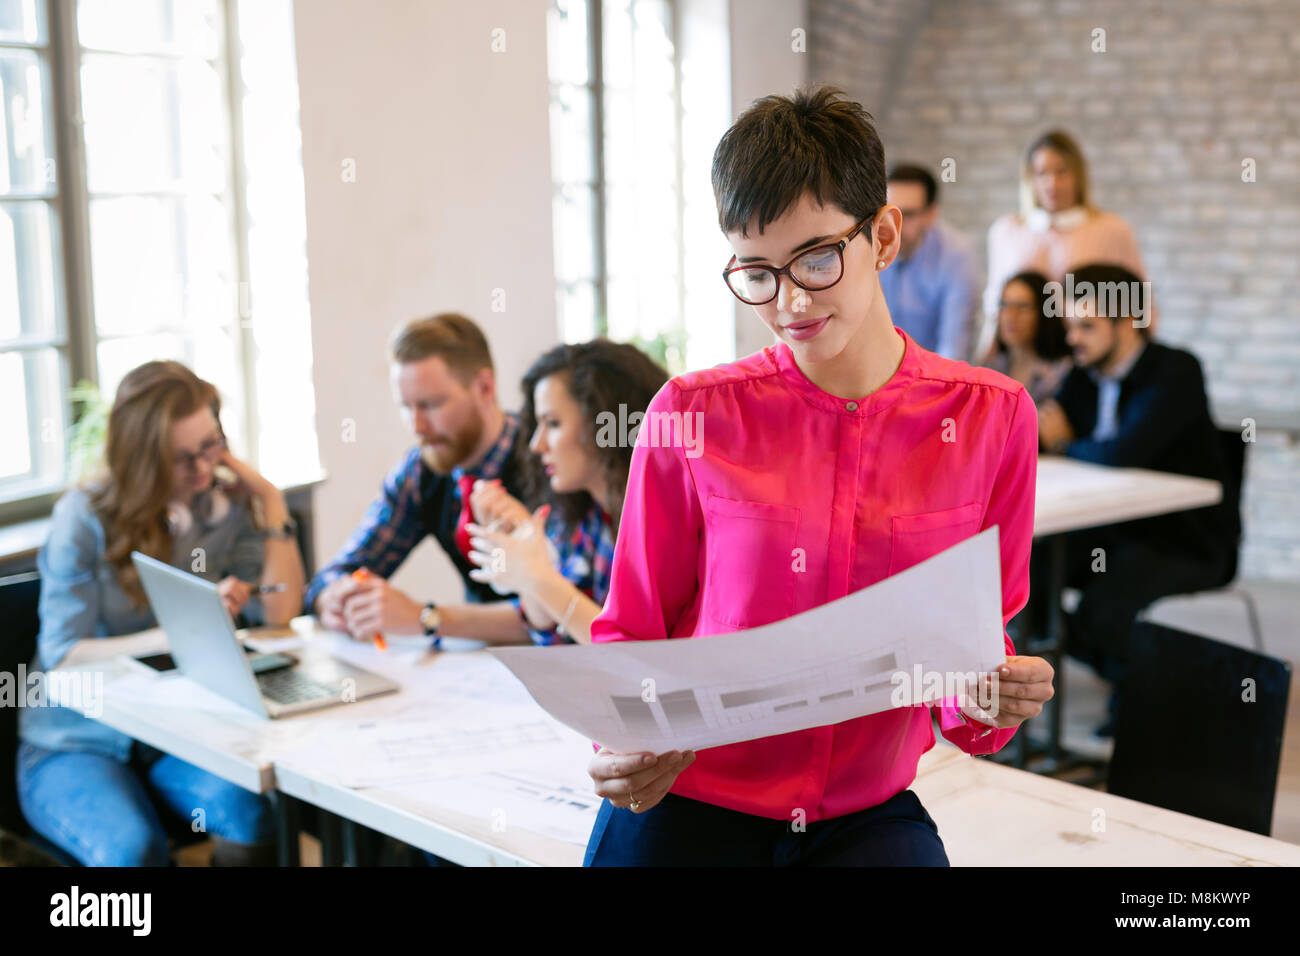 Group of young perspective architects looking at project papers Stock Photo